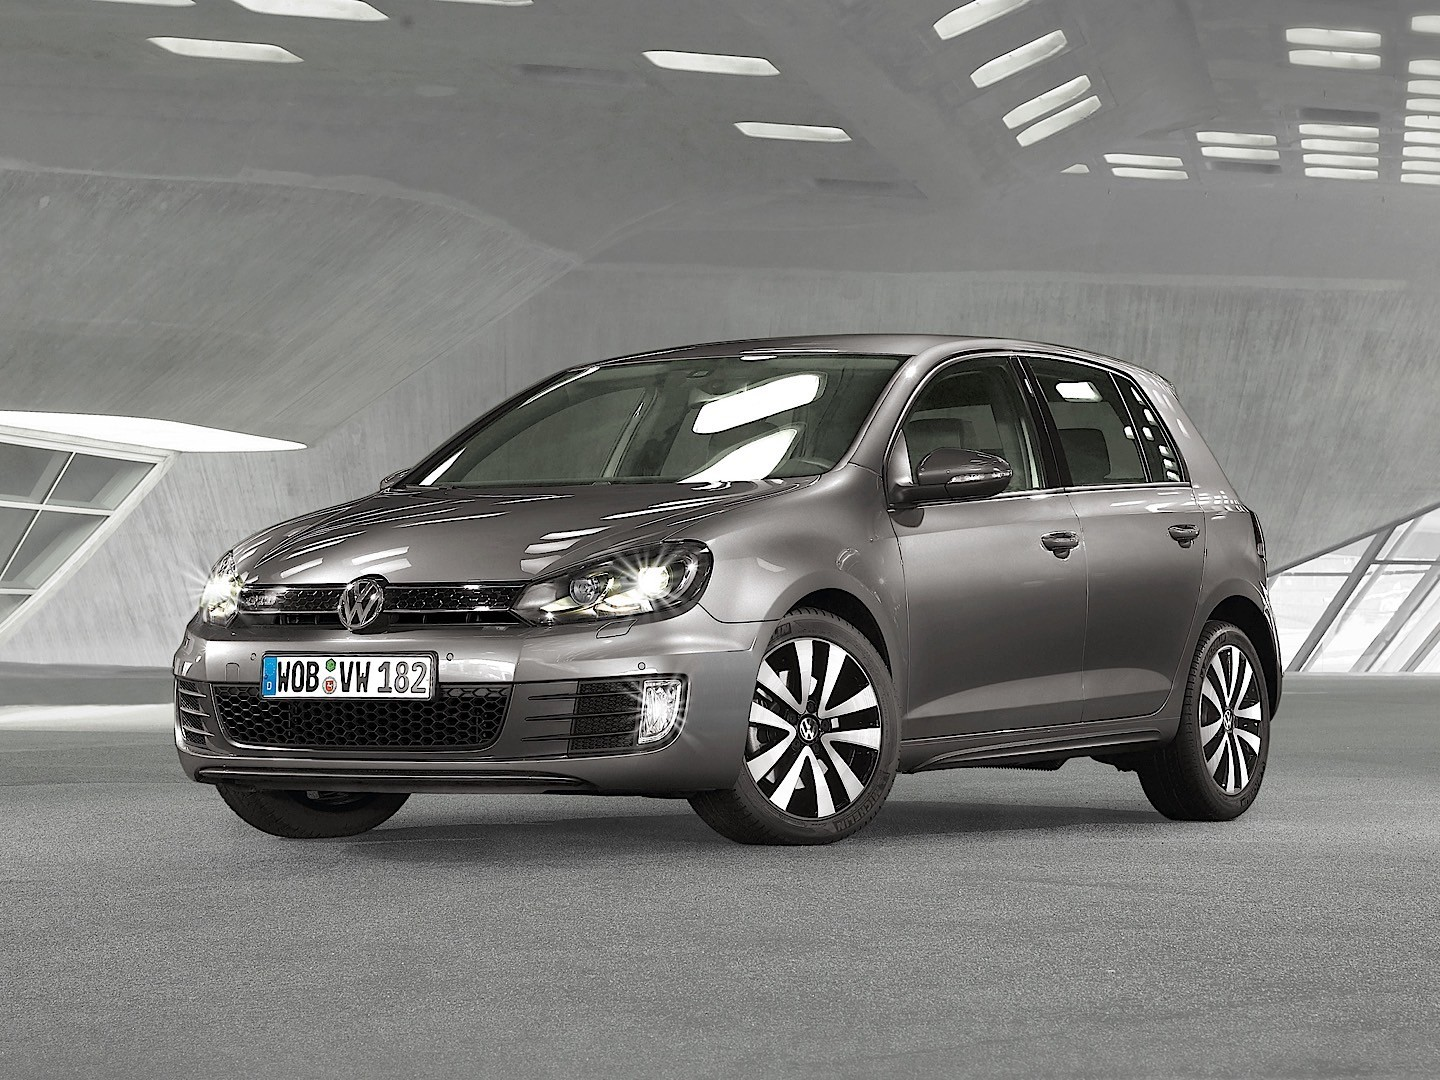 VOLKSWAGEN Golf GTD 5 Doors specs & photos - 2009, 2010, 2011, 2012, 2013 - autoevolution